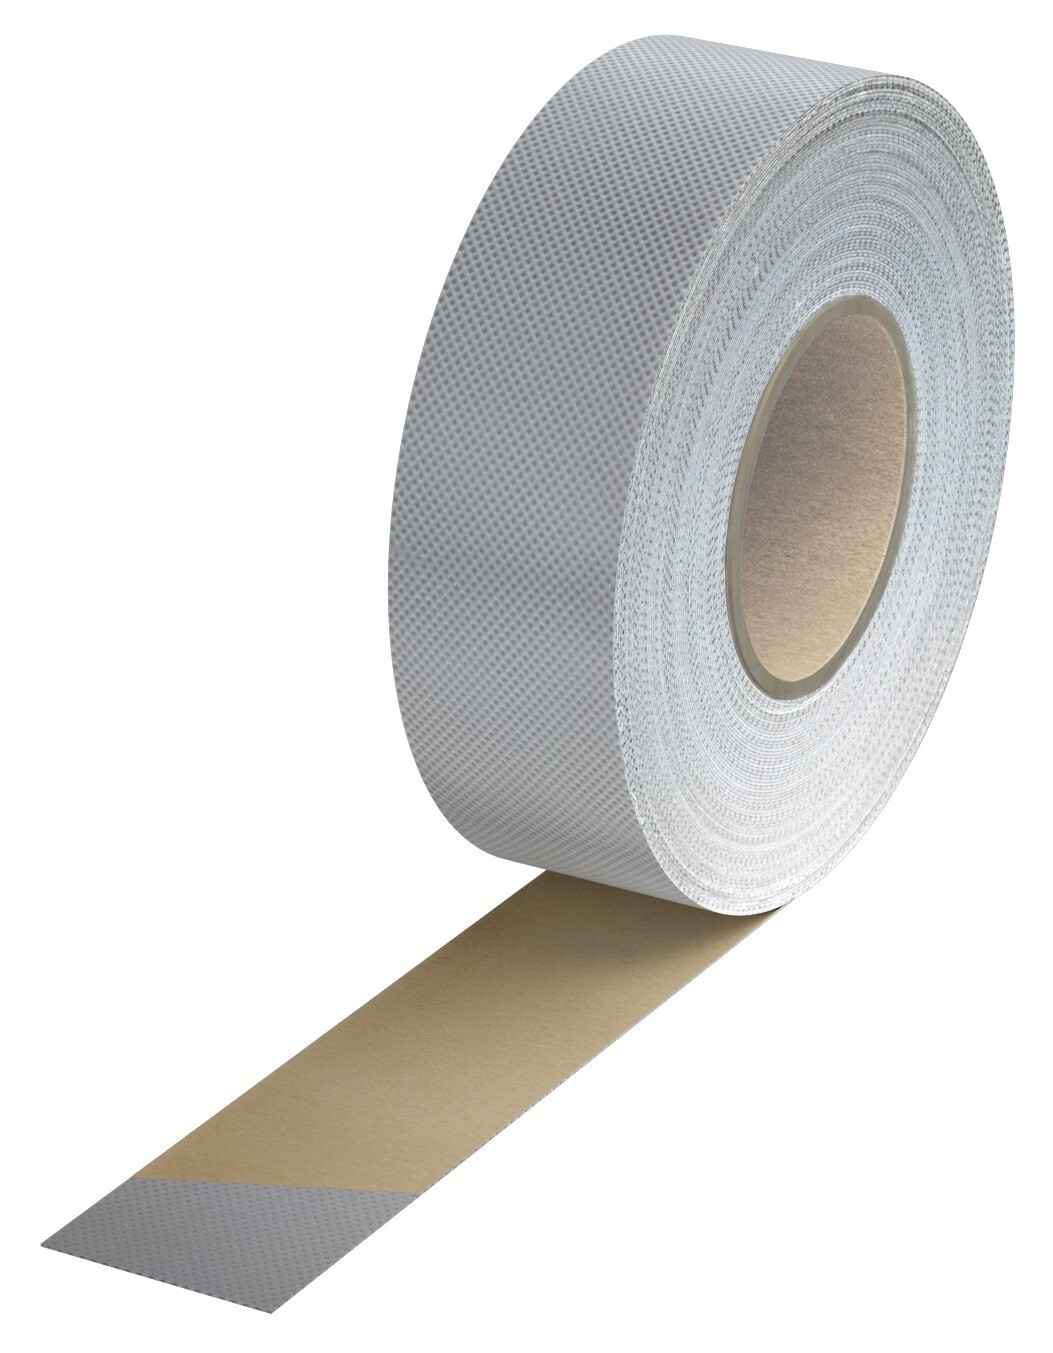 prodomo GREY Air Tight Tape, 50mm or 60mm x 25m